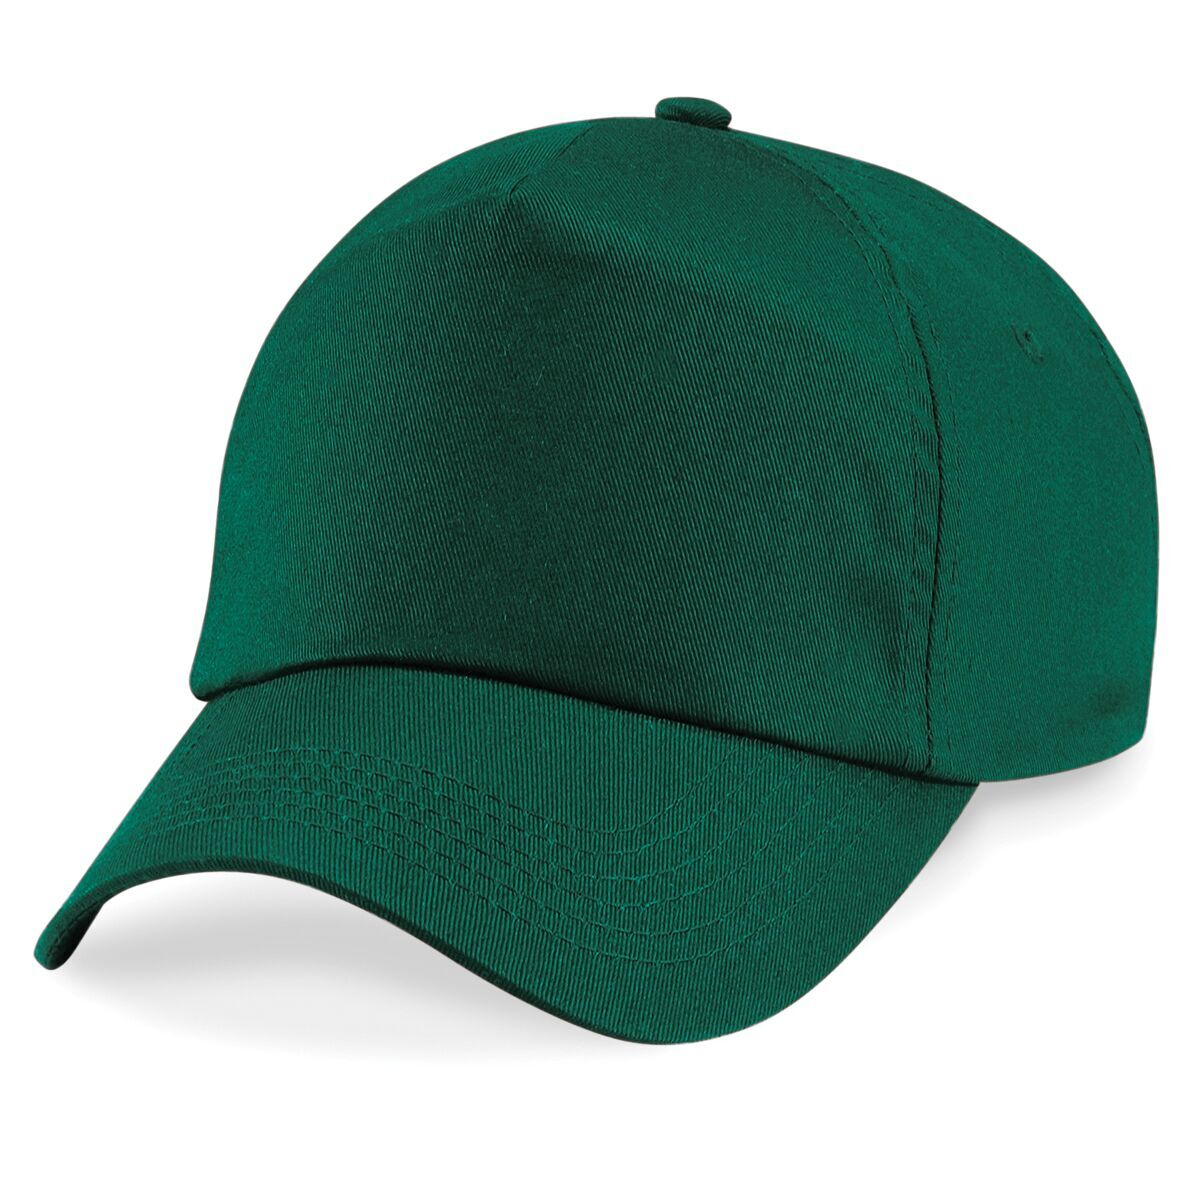 caps - £8.95 including 1 logoAvailable in Adult or Junior SizesAvailable in  a huge range of colours